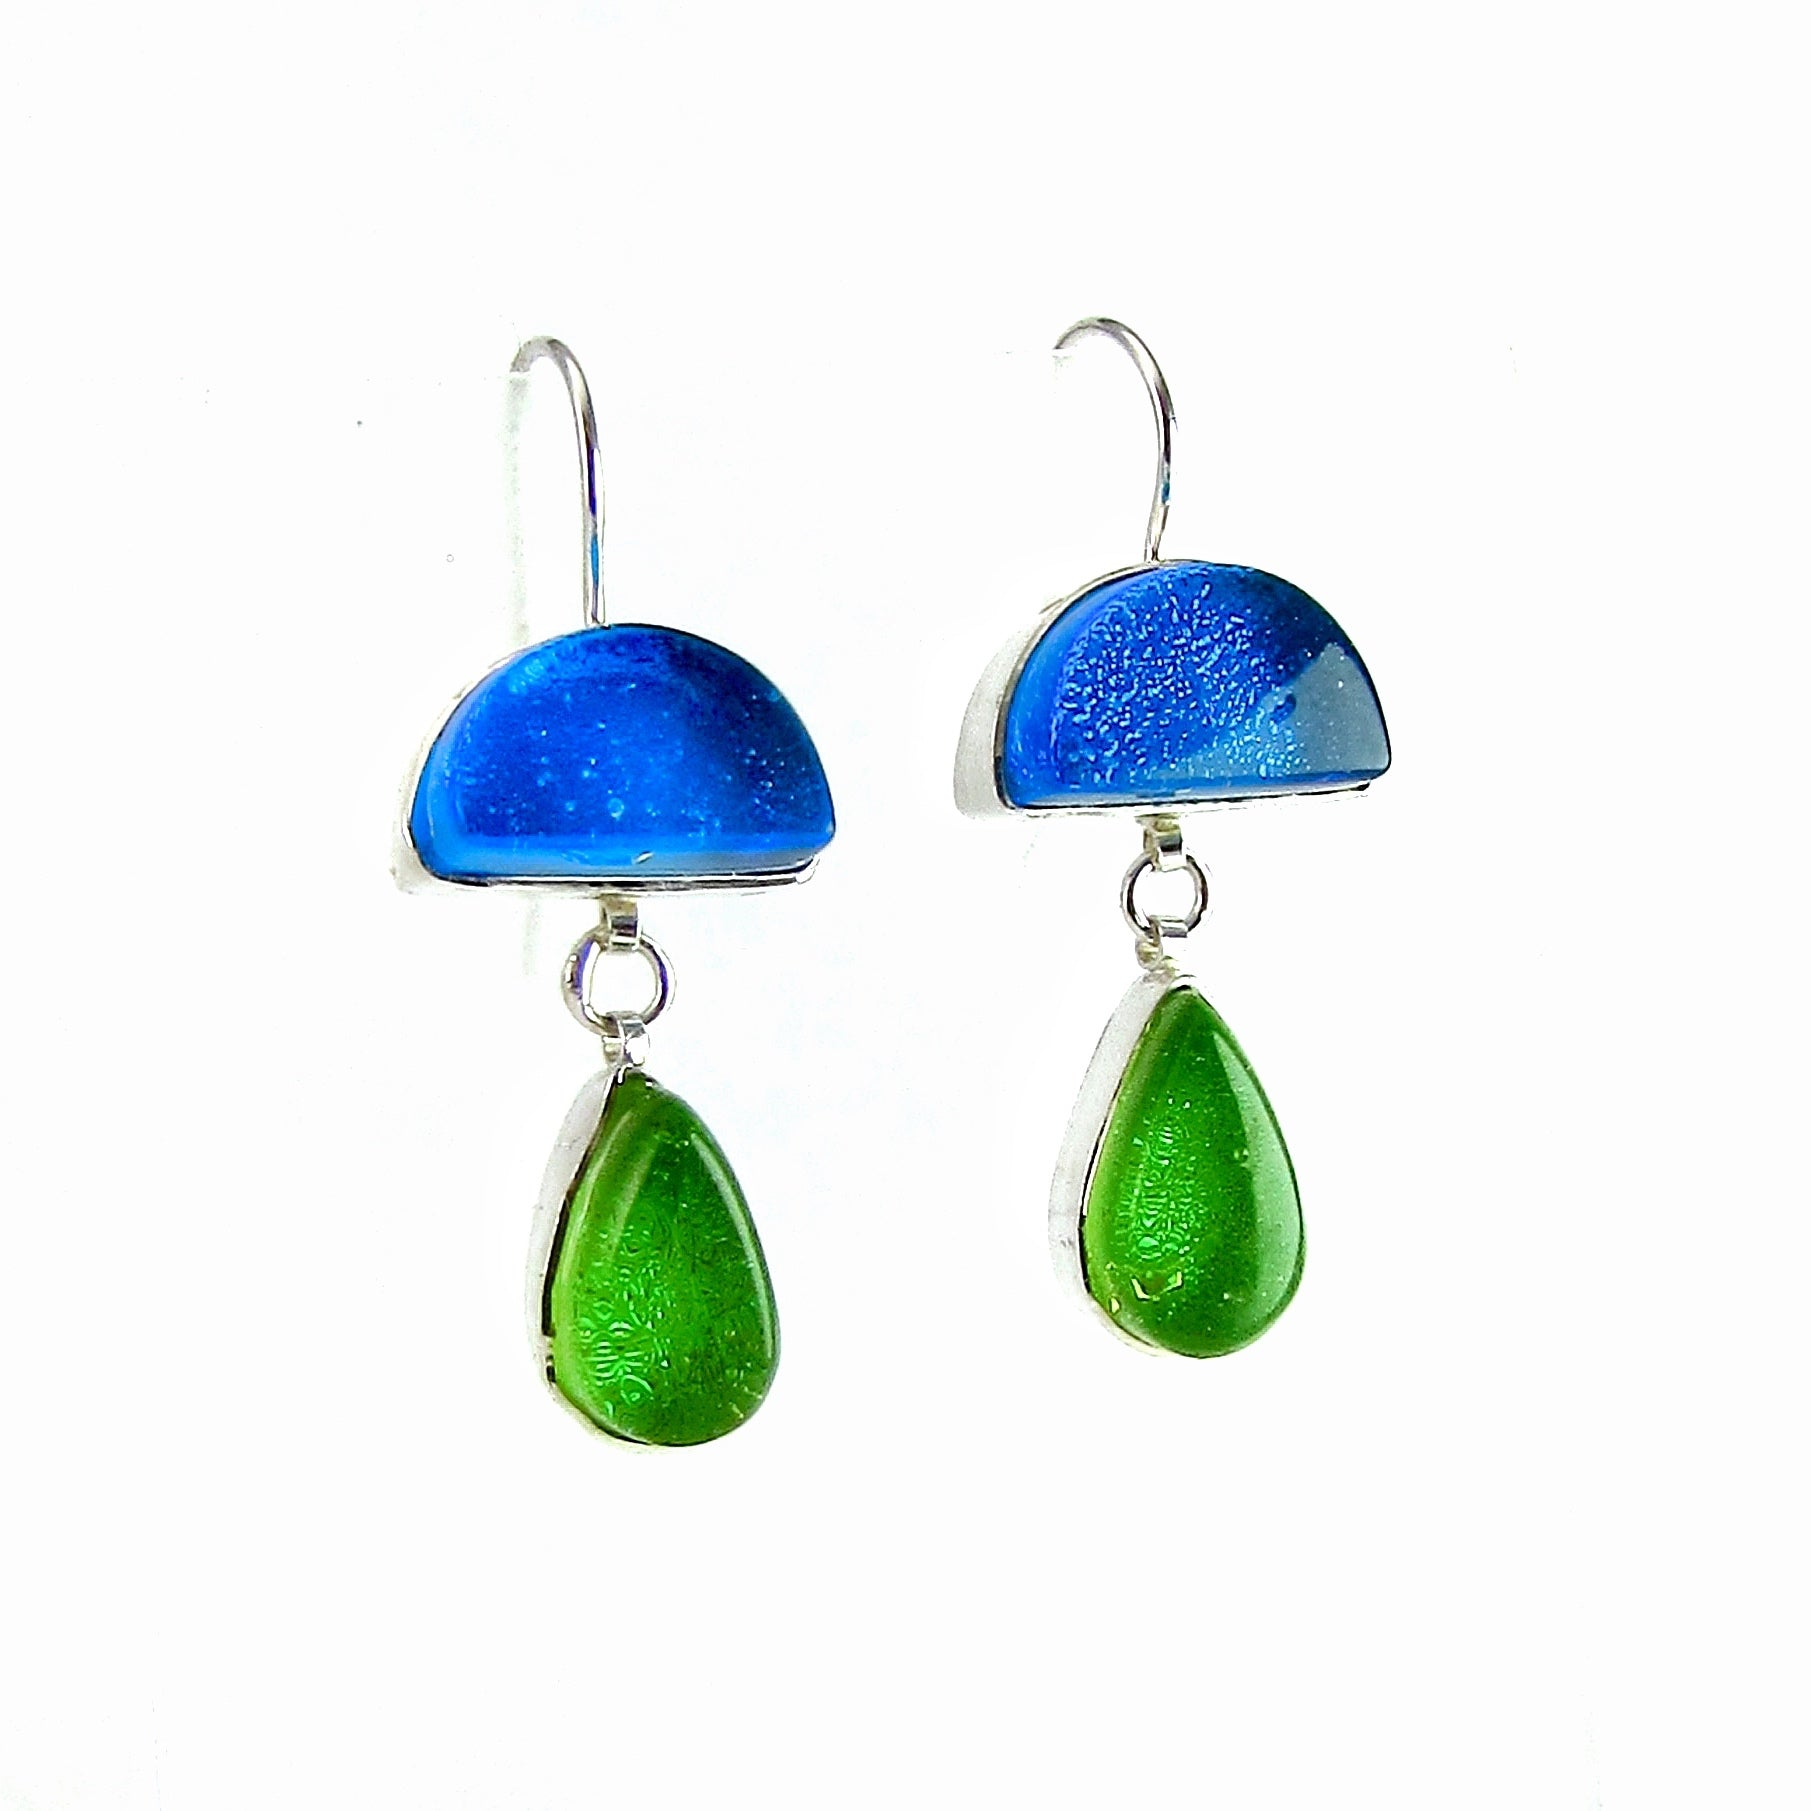 double drop earrings, turquoise, blue, citron, green, fused glass, glass jewelry, glass and silver jewelry, handmade, handcrafted, American Craft, hand fabricated jewelry, hand fabricated jewellery,  Athen, Georgia, colorful jewelry, sparkle, bullseye glass, dichroic glass, art jewelry